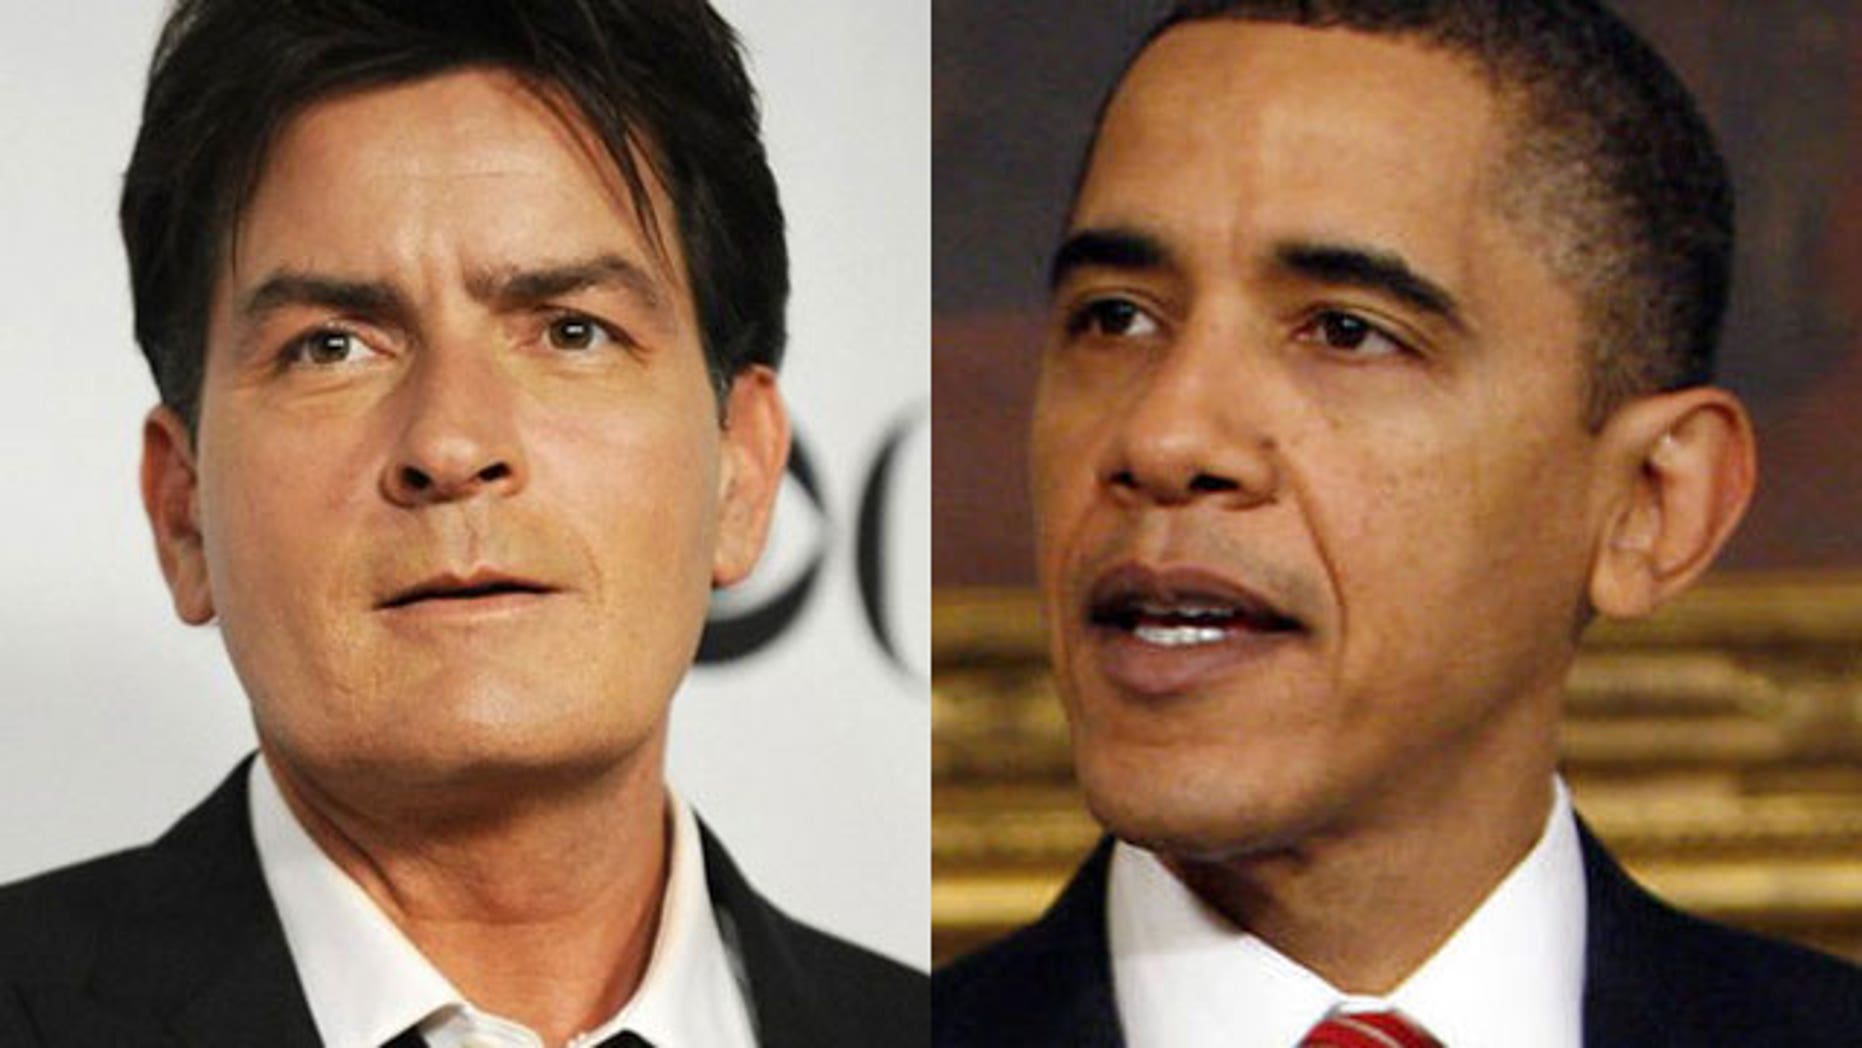 Charlie Sheen implied to crowds in Washington D.C. that Obama's birth certificate is 'Photoshopped.'